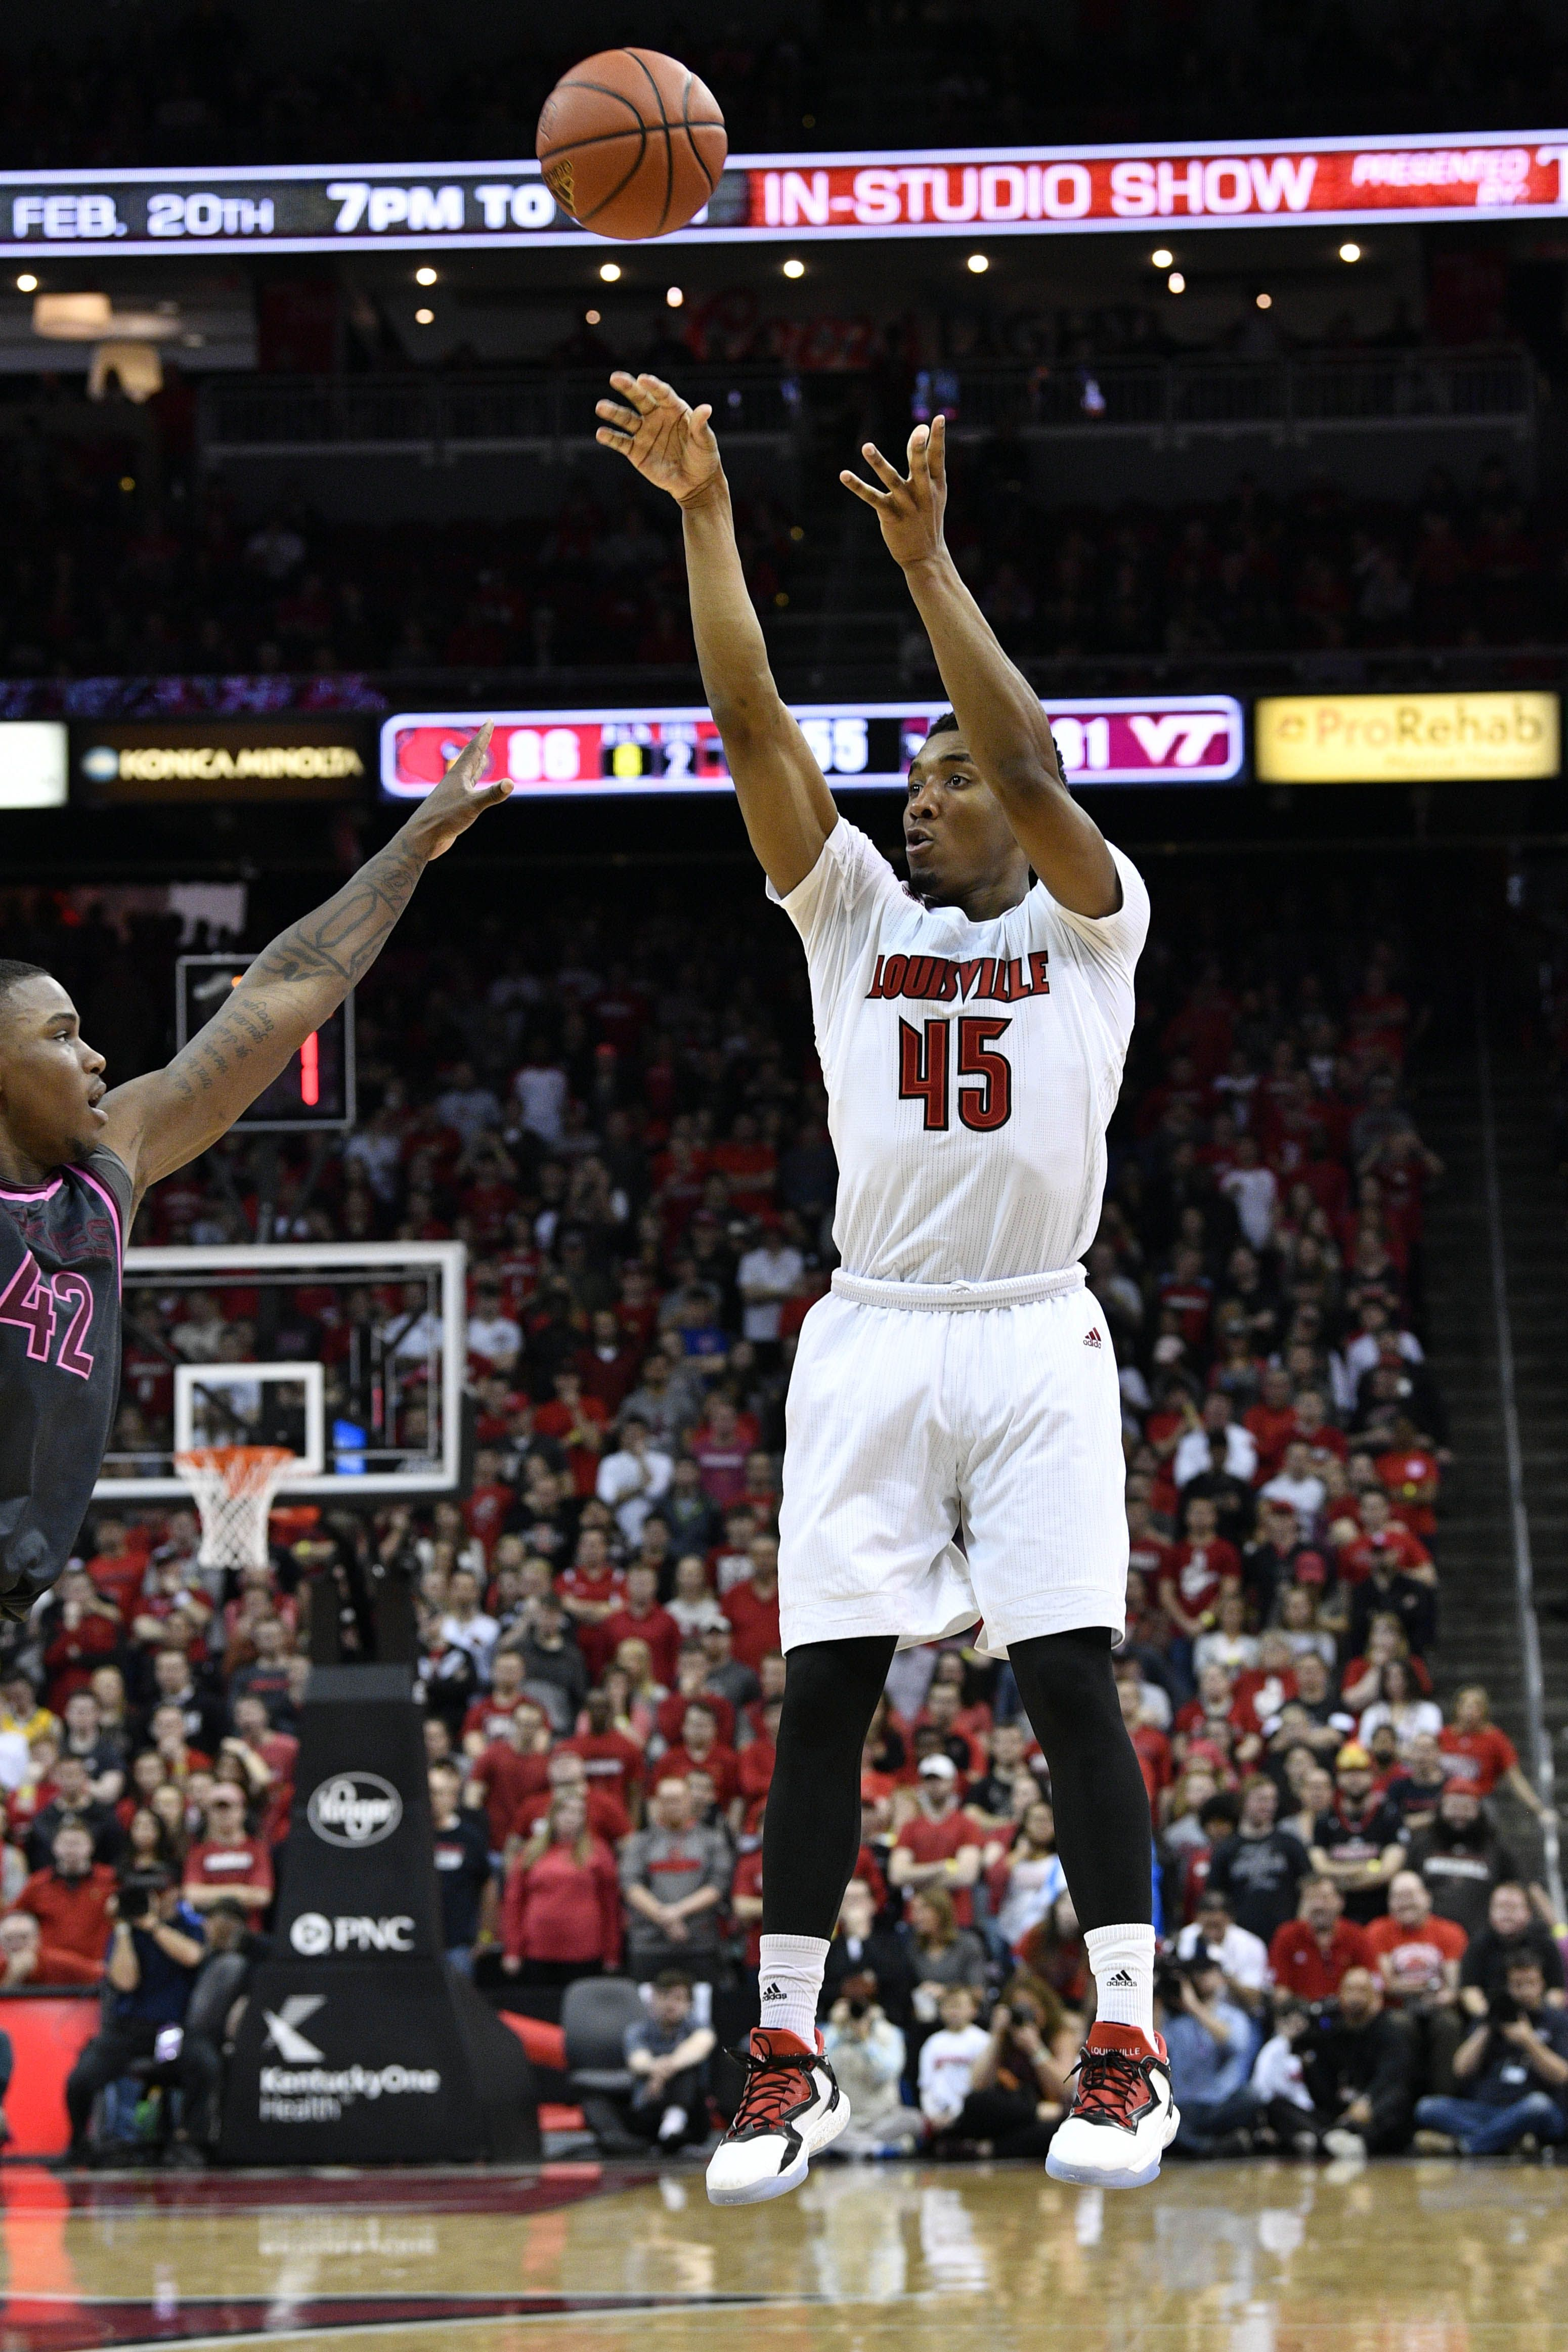 2017 NBA Draft Analysis: What to Expect from Louisville's Donovan